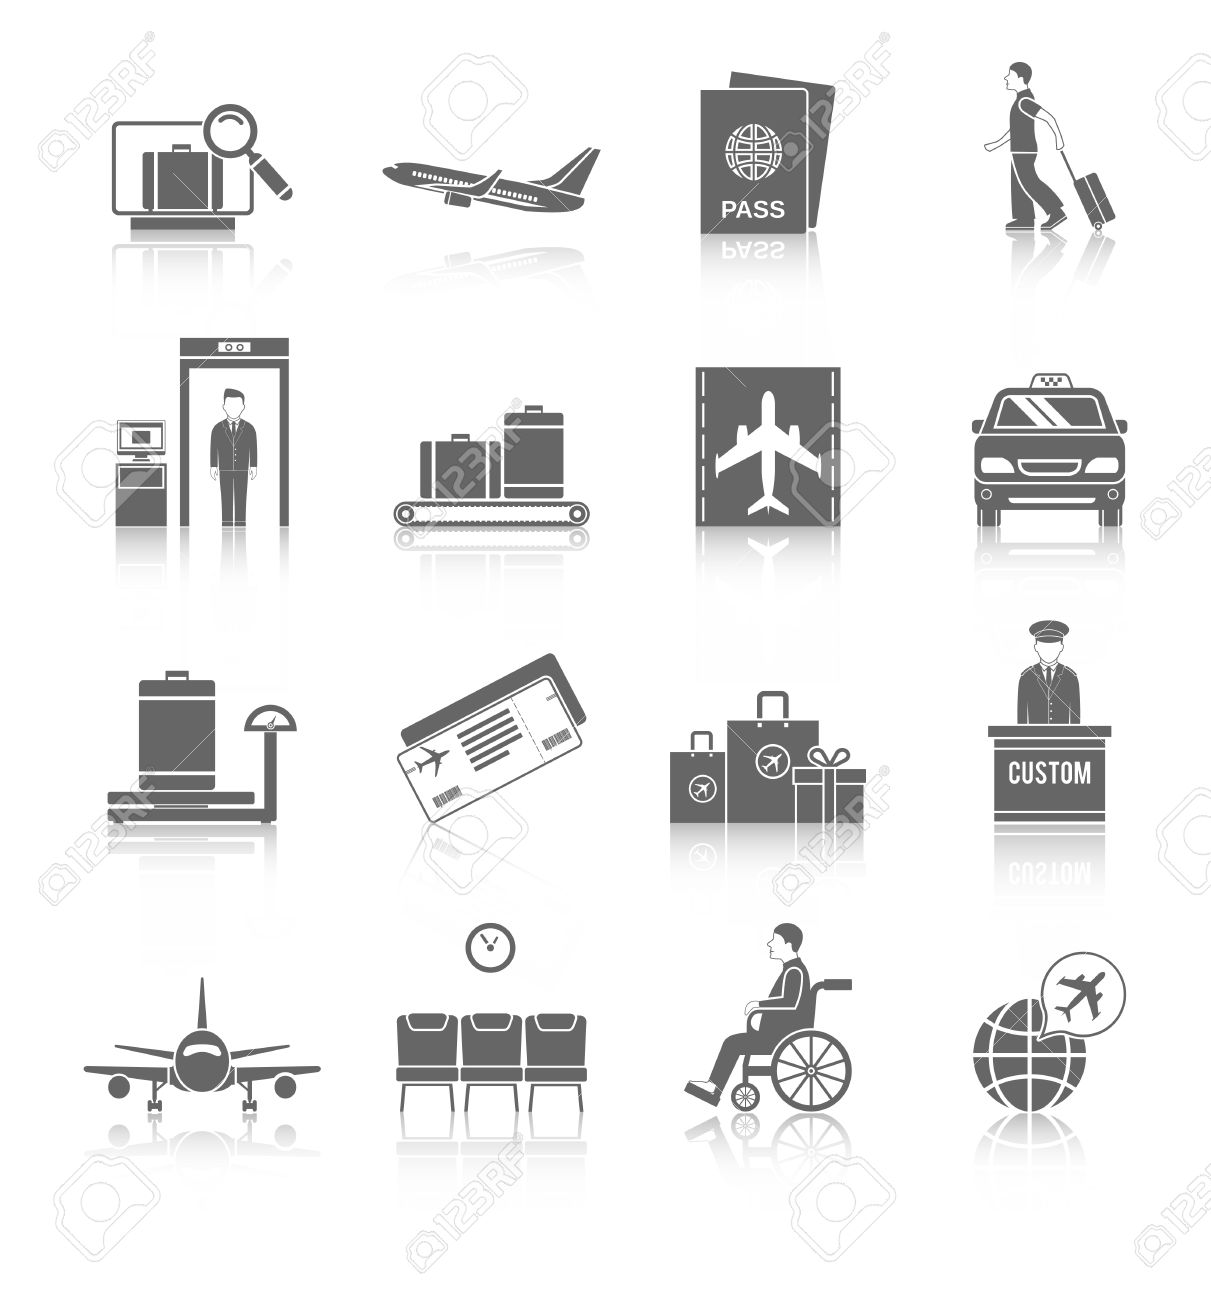 Airport Flight Terminal Passenger Security Icons Black Set Isolated Vector Illustration Stock